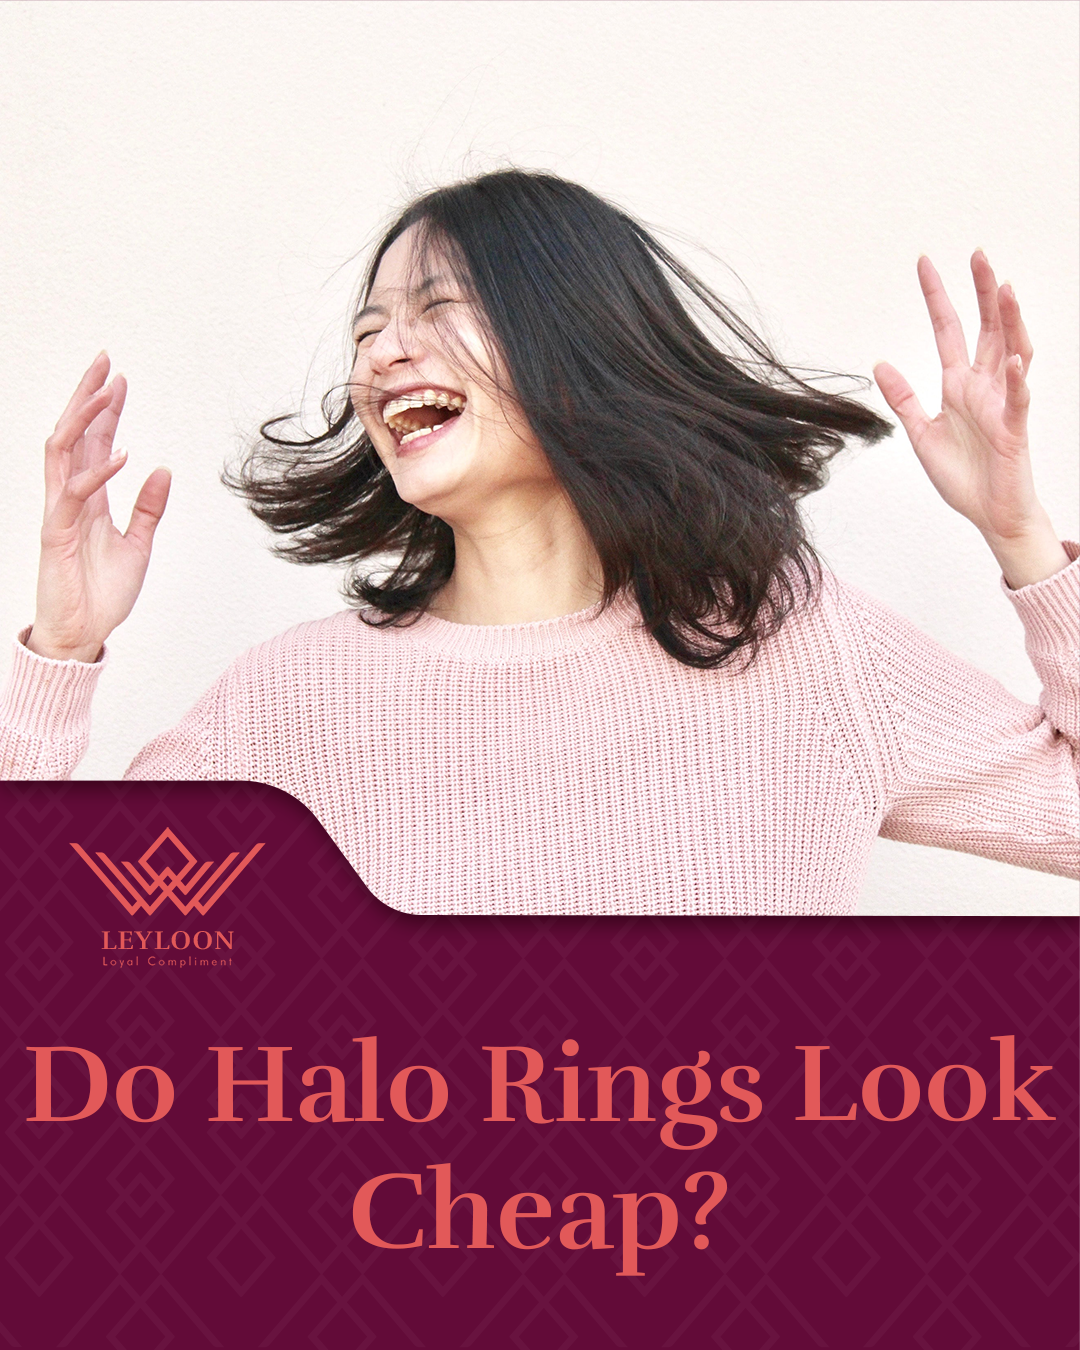 Do Halo Rings Look Cheap?